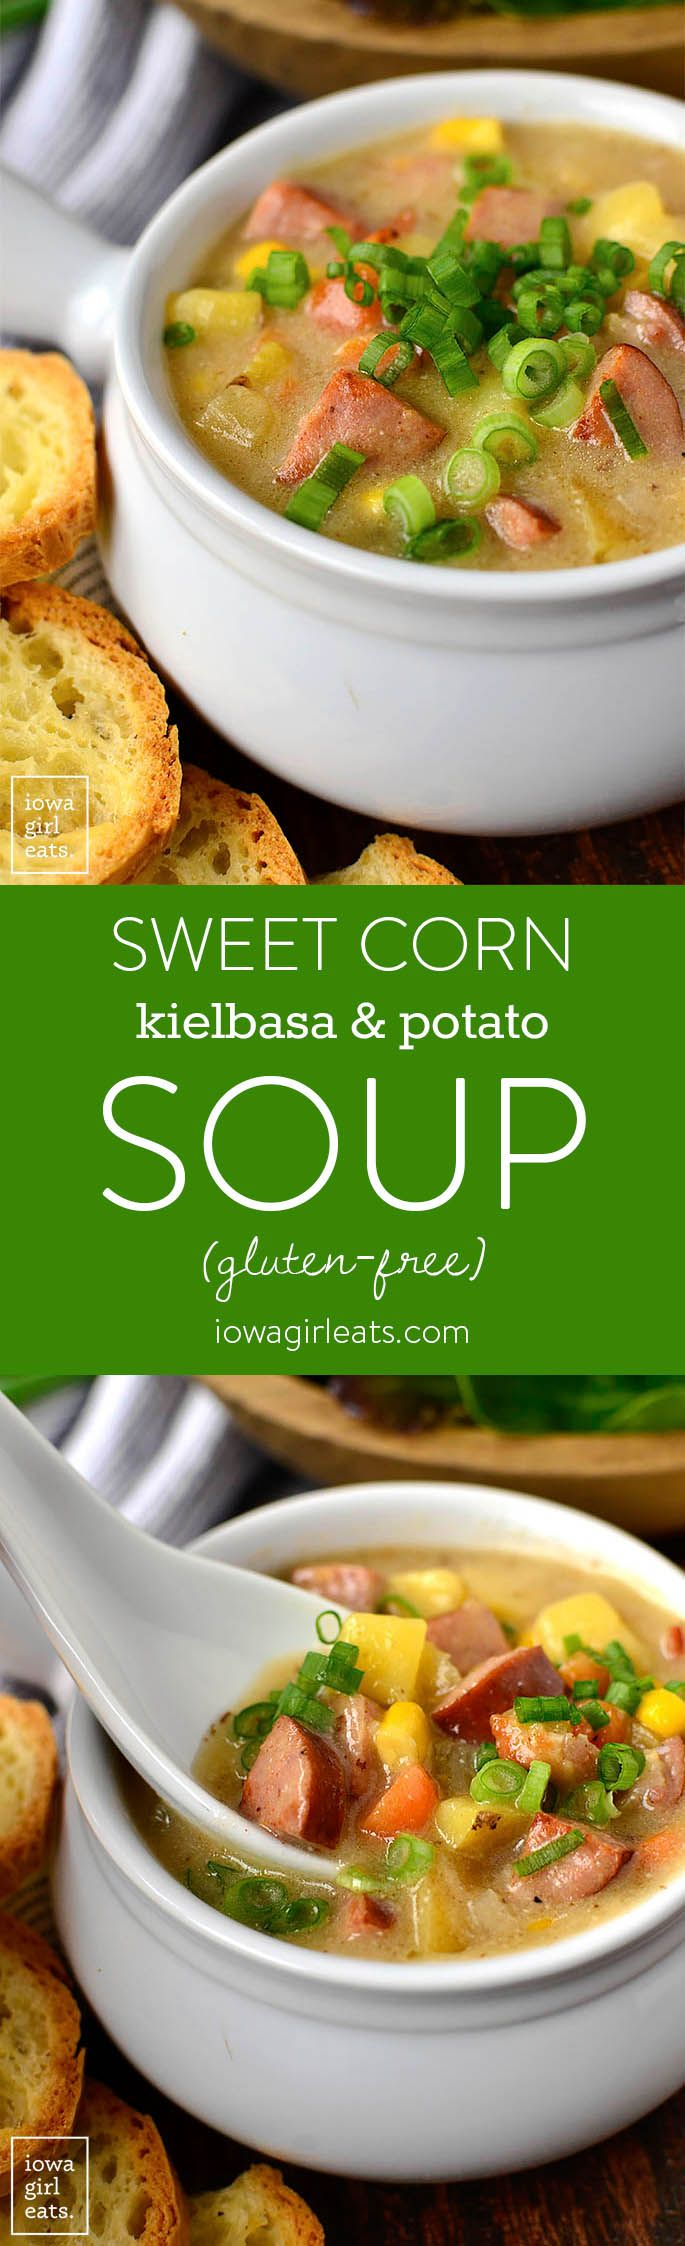 Sweet Corn, Kielbasa and Potato Soup is for the coldest of nights! Thishearty and comforting,gluten-free soup recipe is filled with savory kielbasa, creamy potatoes, and snappy sweet corn. | iowagirleats.com #glutenfree